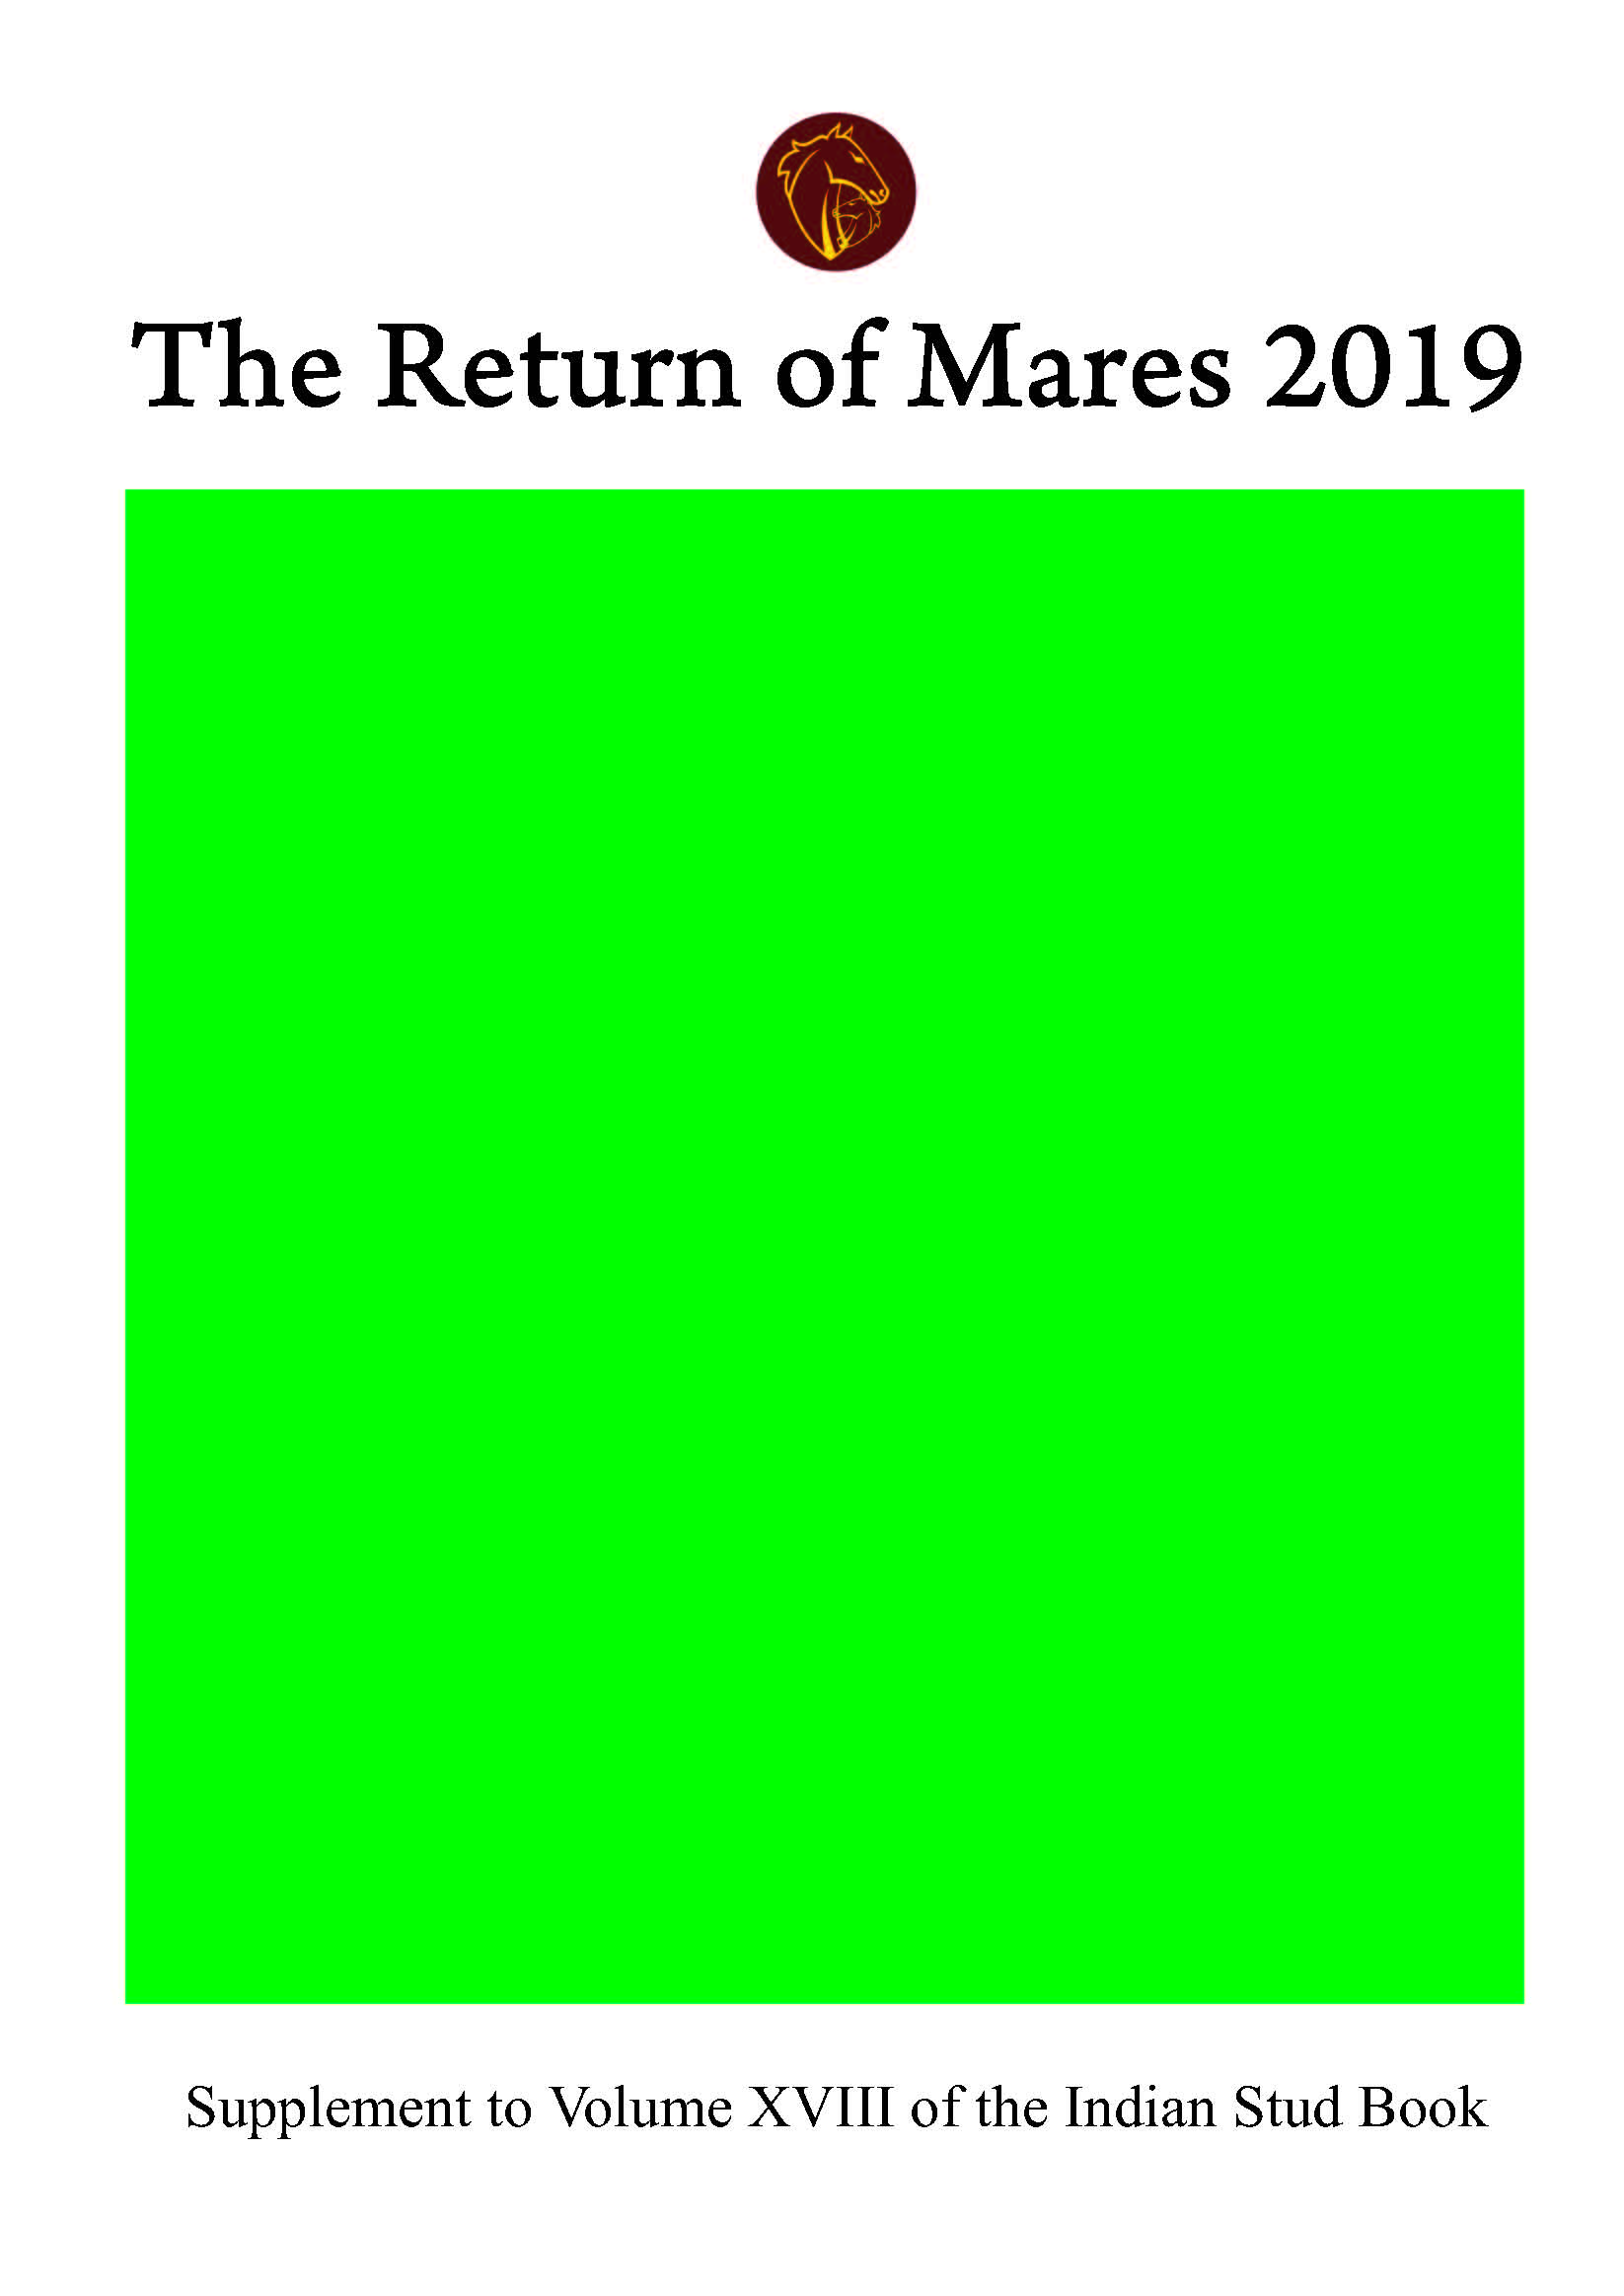 The Return of Mares - 2019